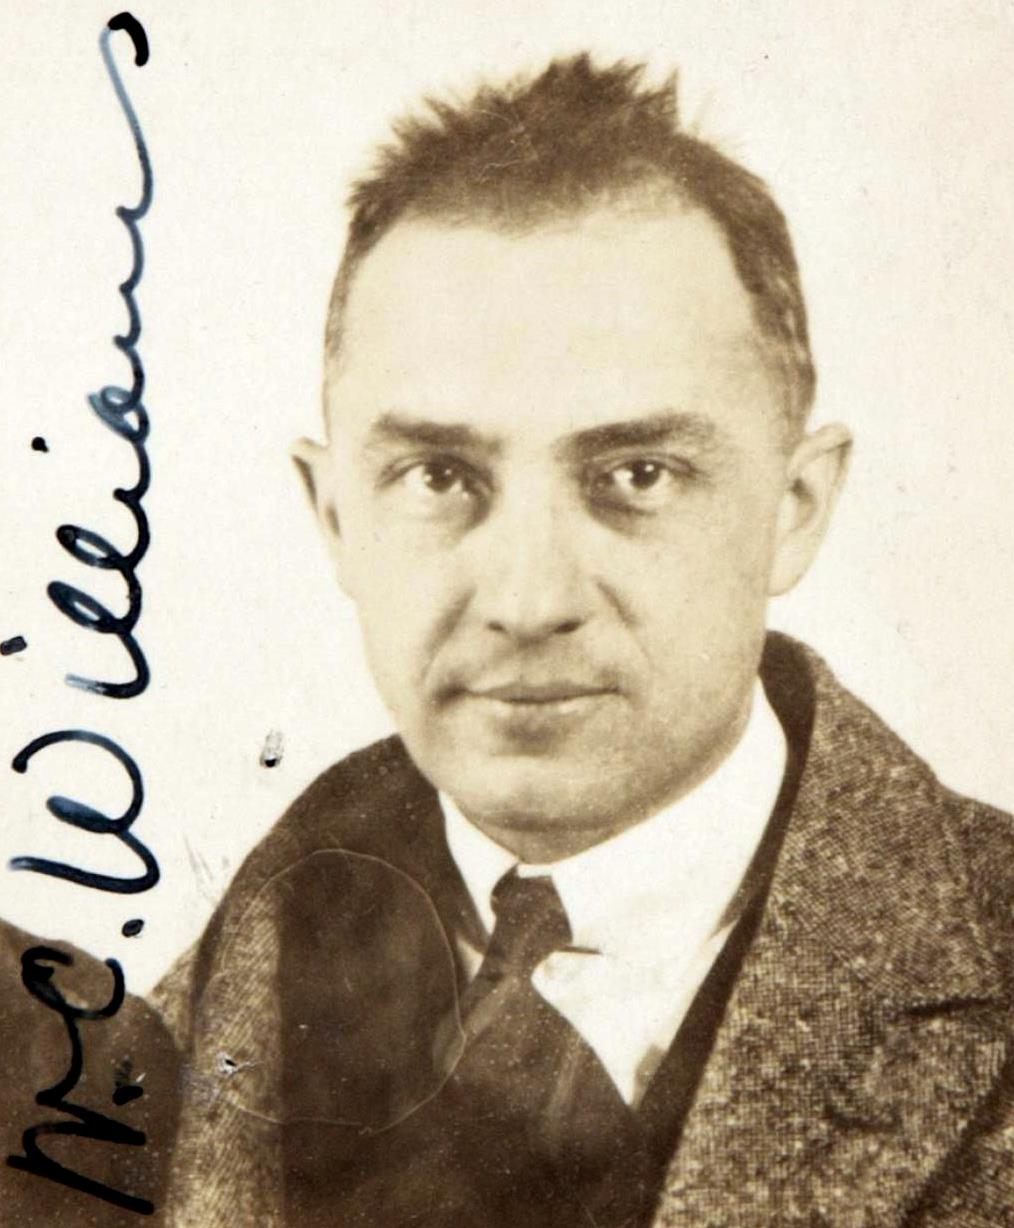 William Carlos Williams' passport photograph,1921